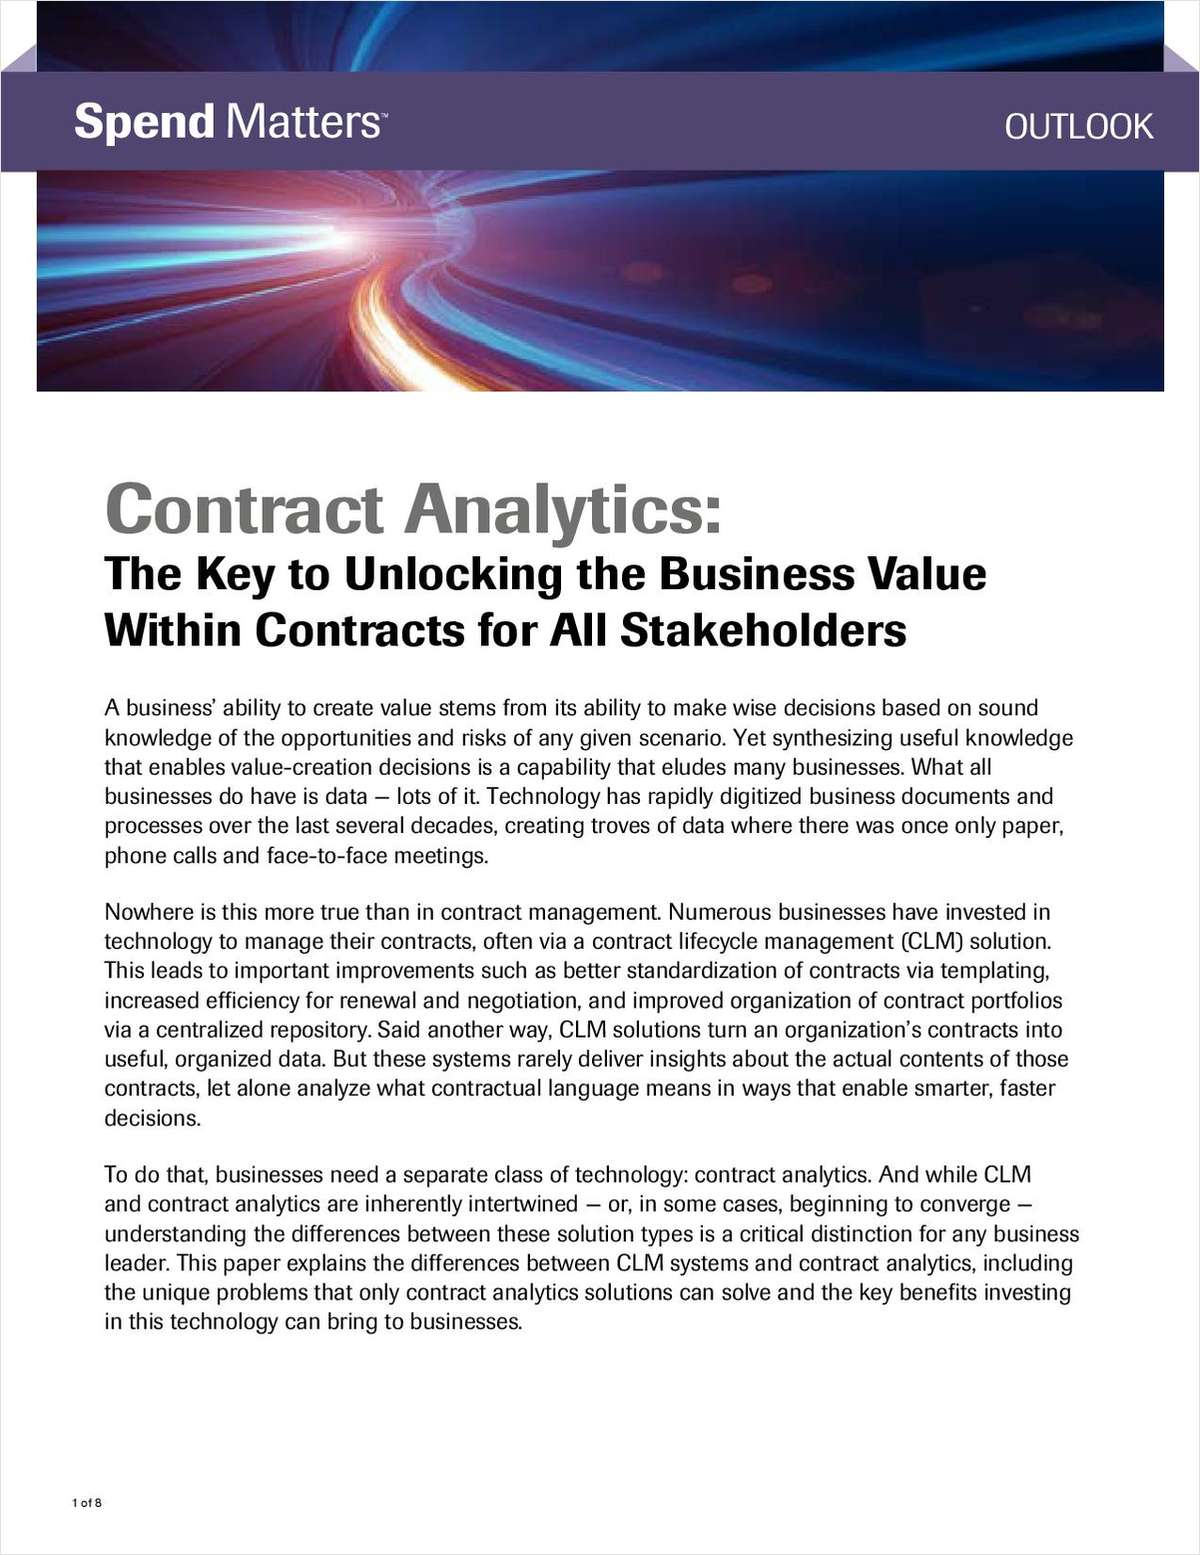 Understand the power of contract analytics and how to unlock the business value within those contracts with this whitepaper.